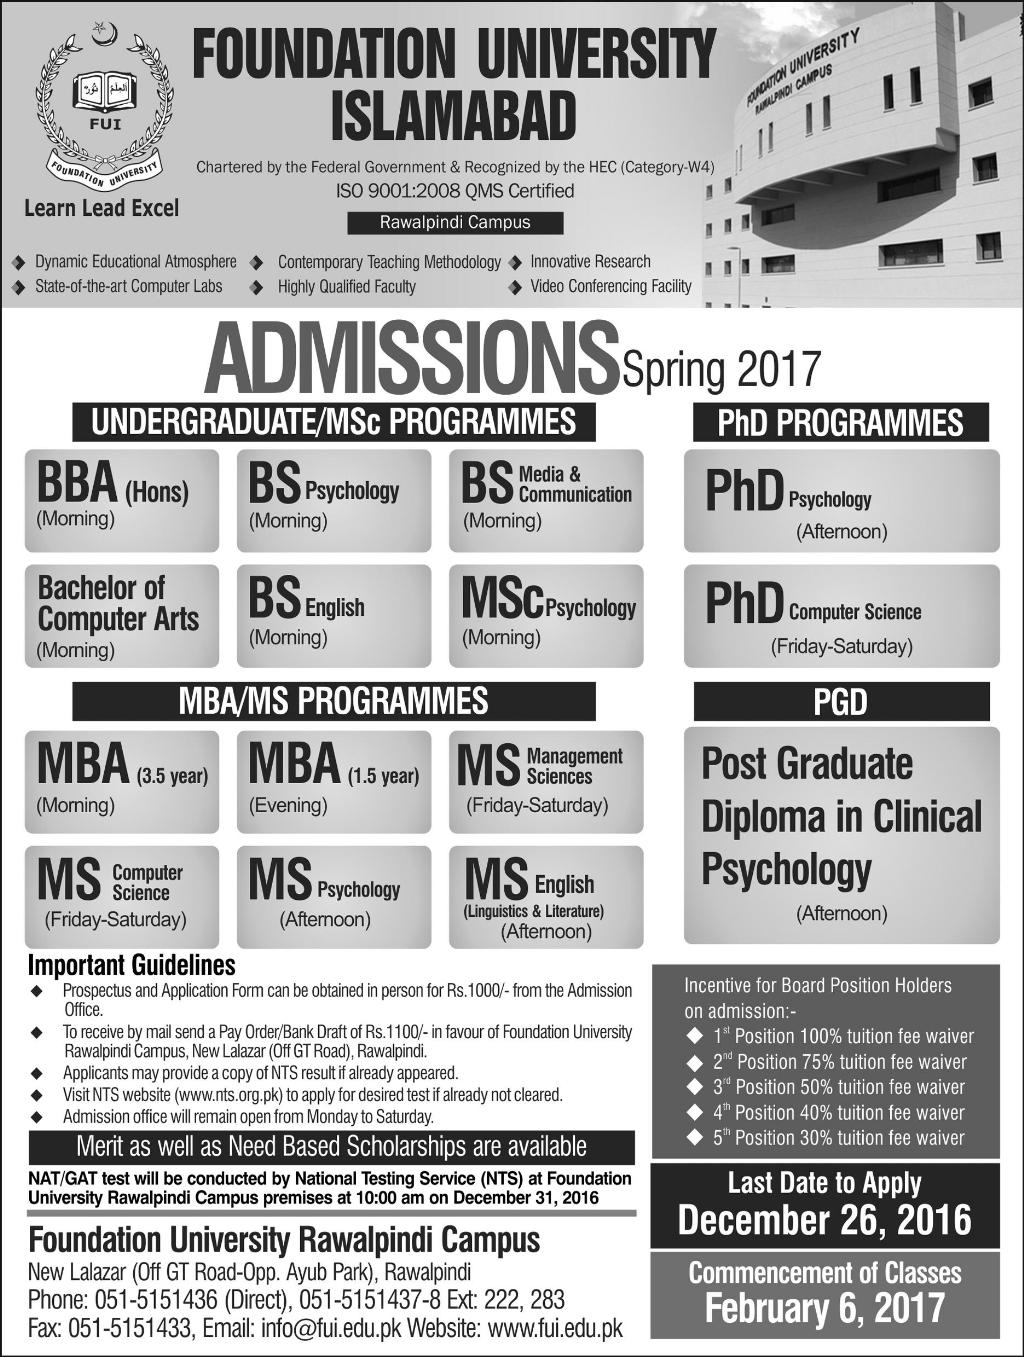 Foundation University Islamabad FUI Admissions Spring 2017 Form, Last Date